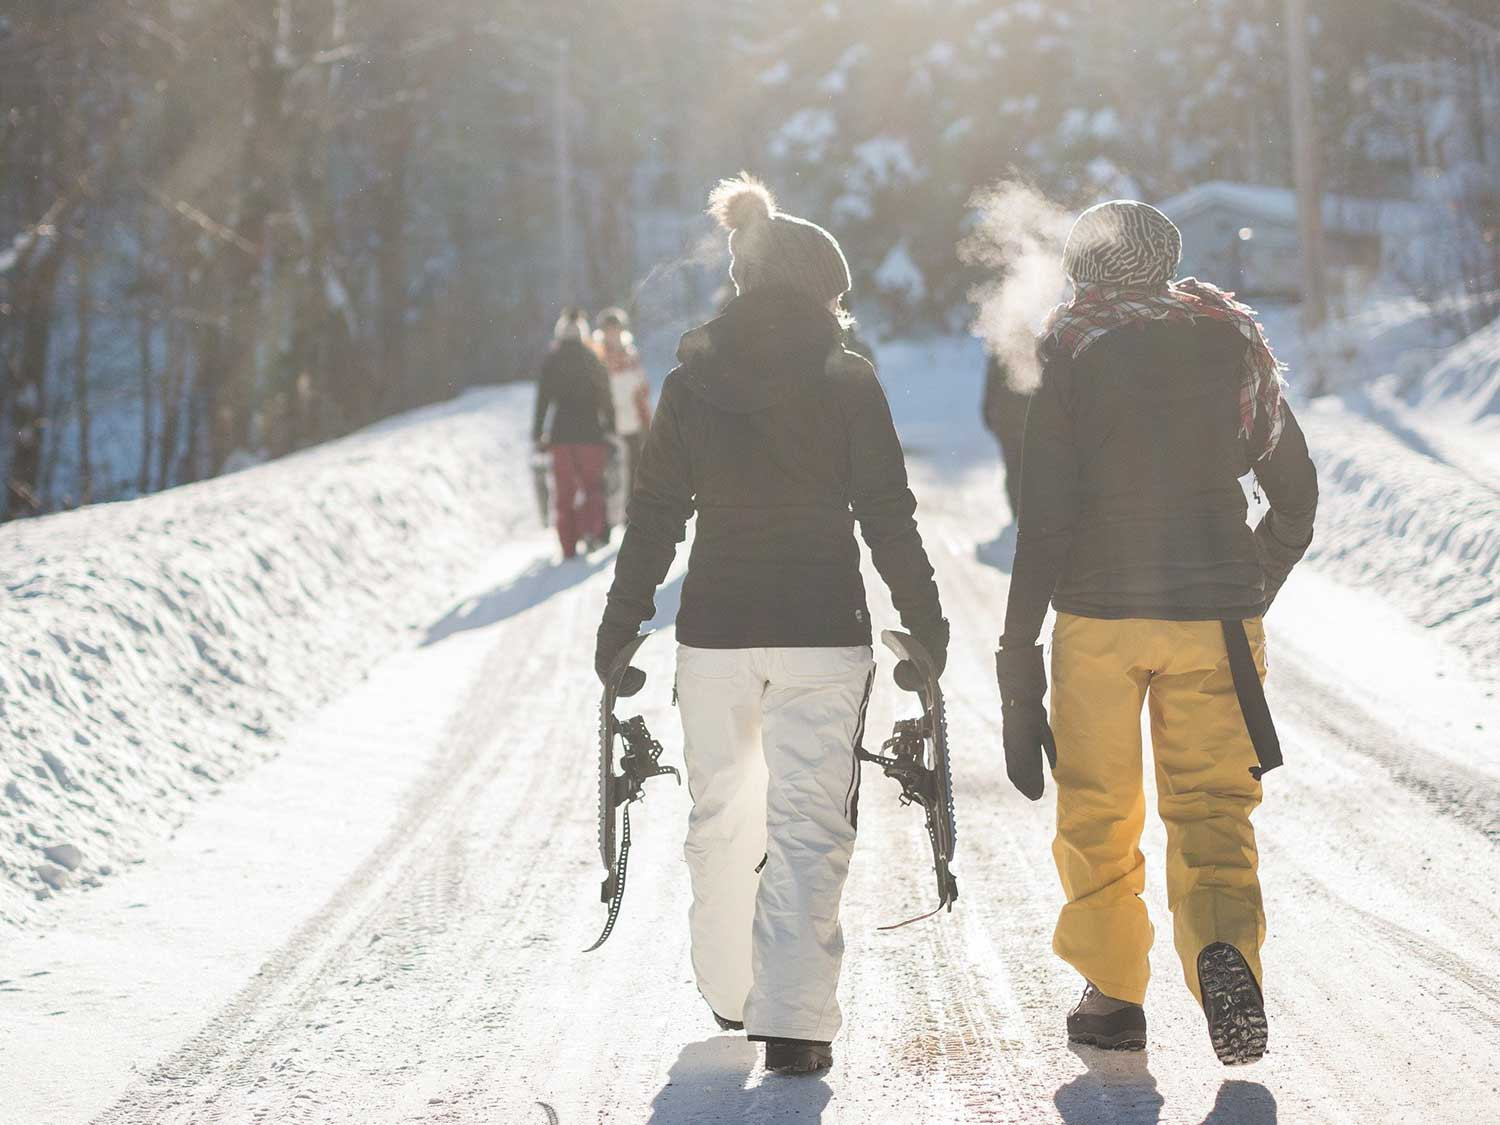 Man and woman hiking while carrying snowshoes and wearing long underwear to stay warm.